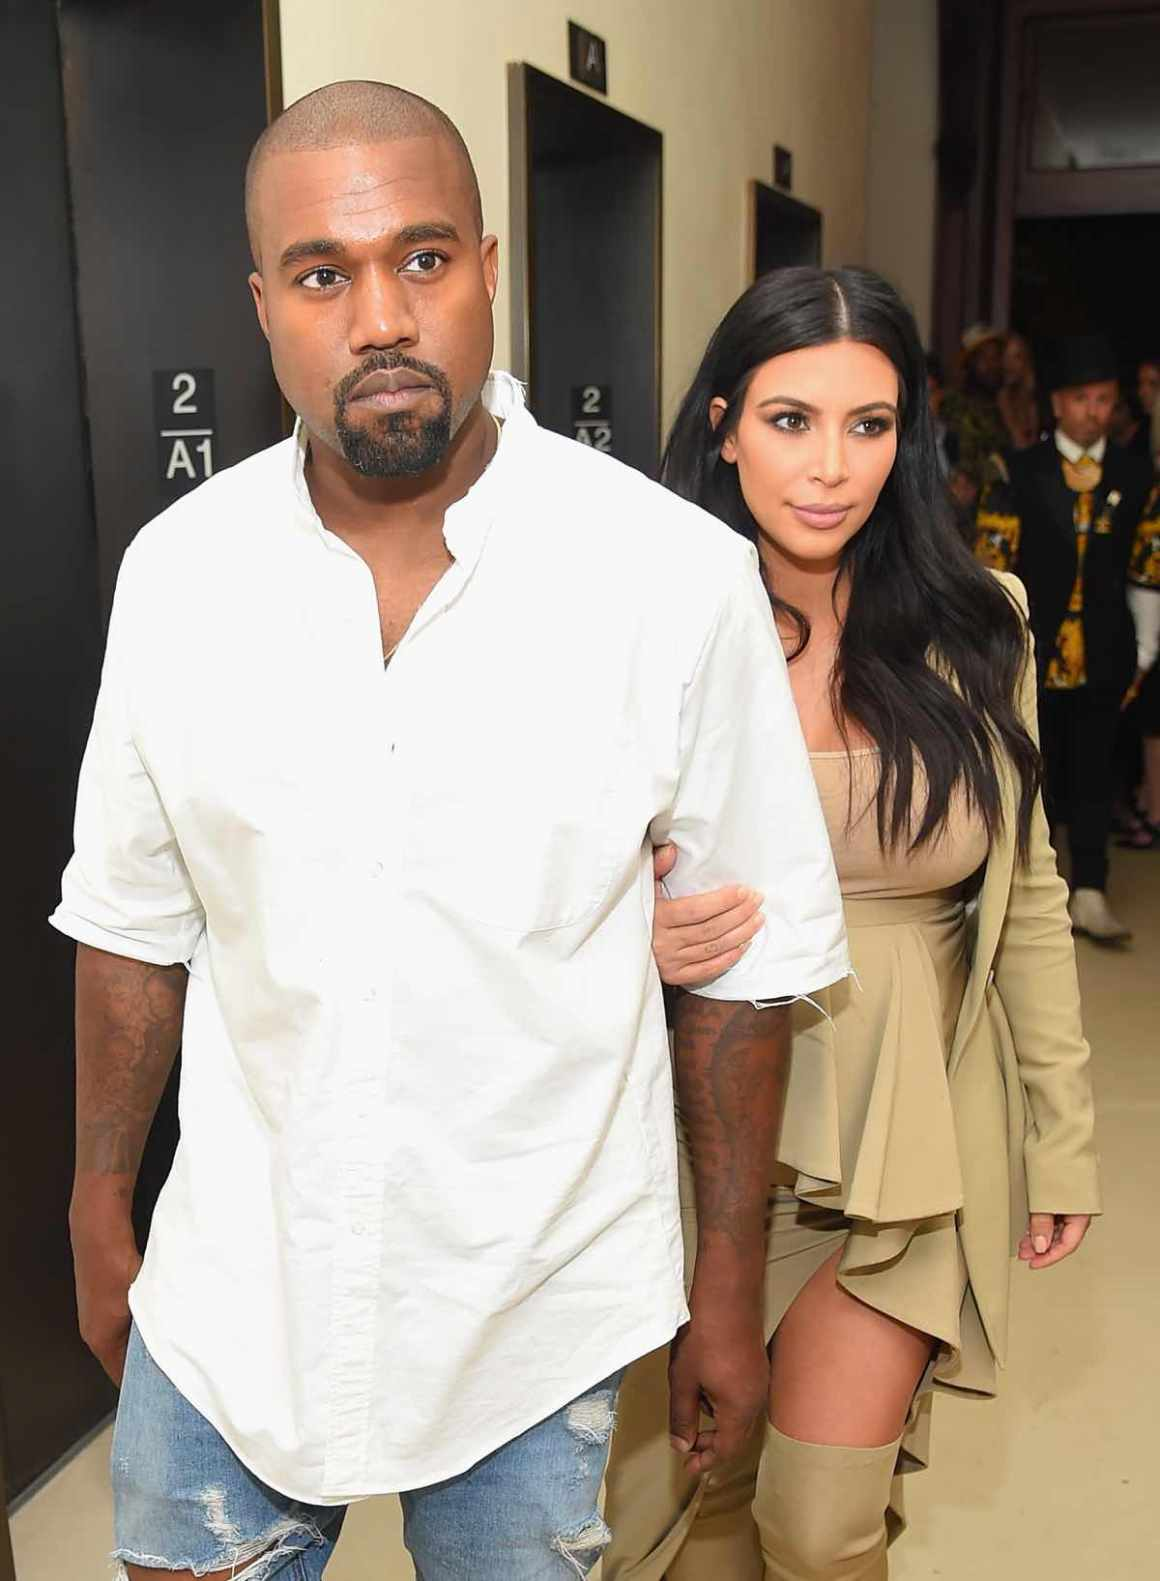 Kanye West and Kim Kardashian Rihanna Party At The New York EDITION